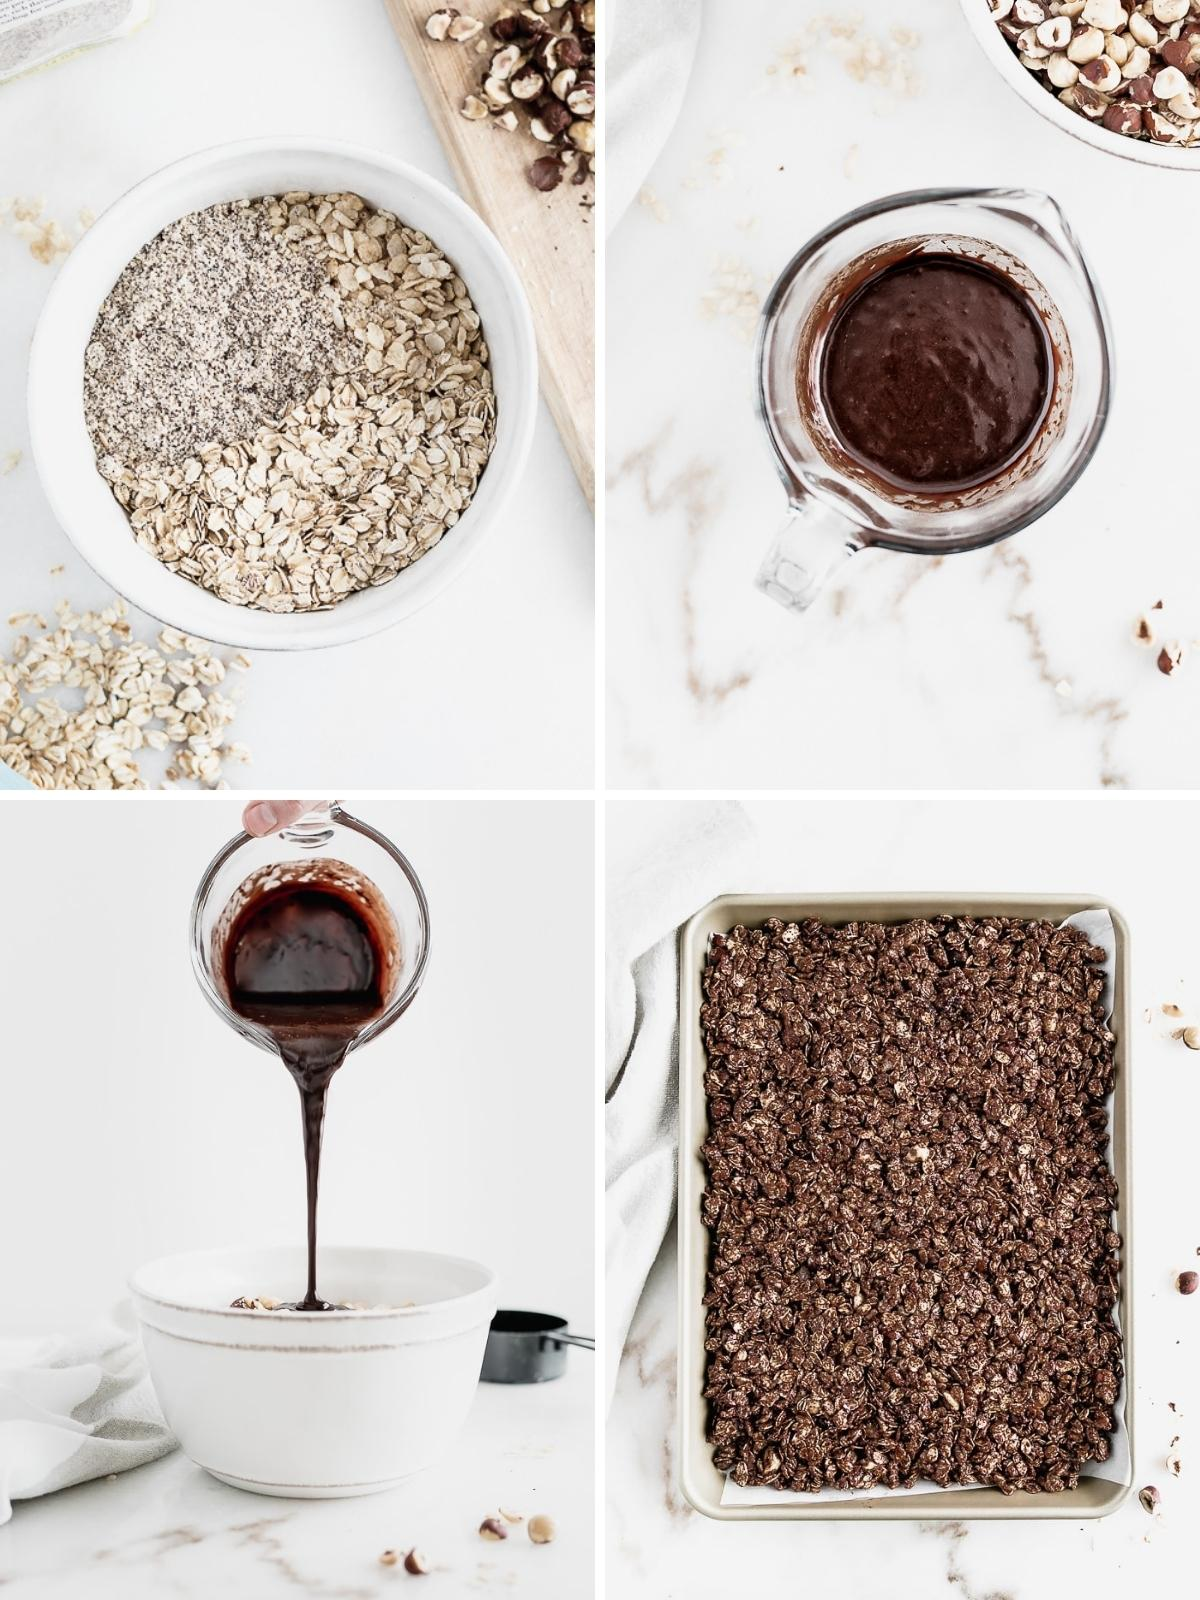 unbaked chocolate granola packed onto a baking sheet.